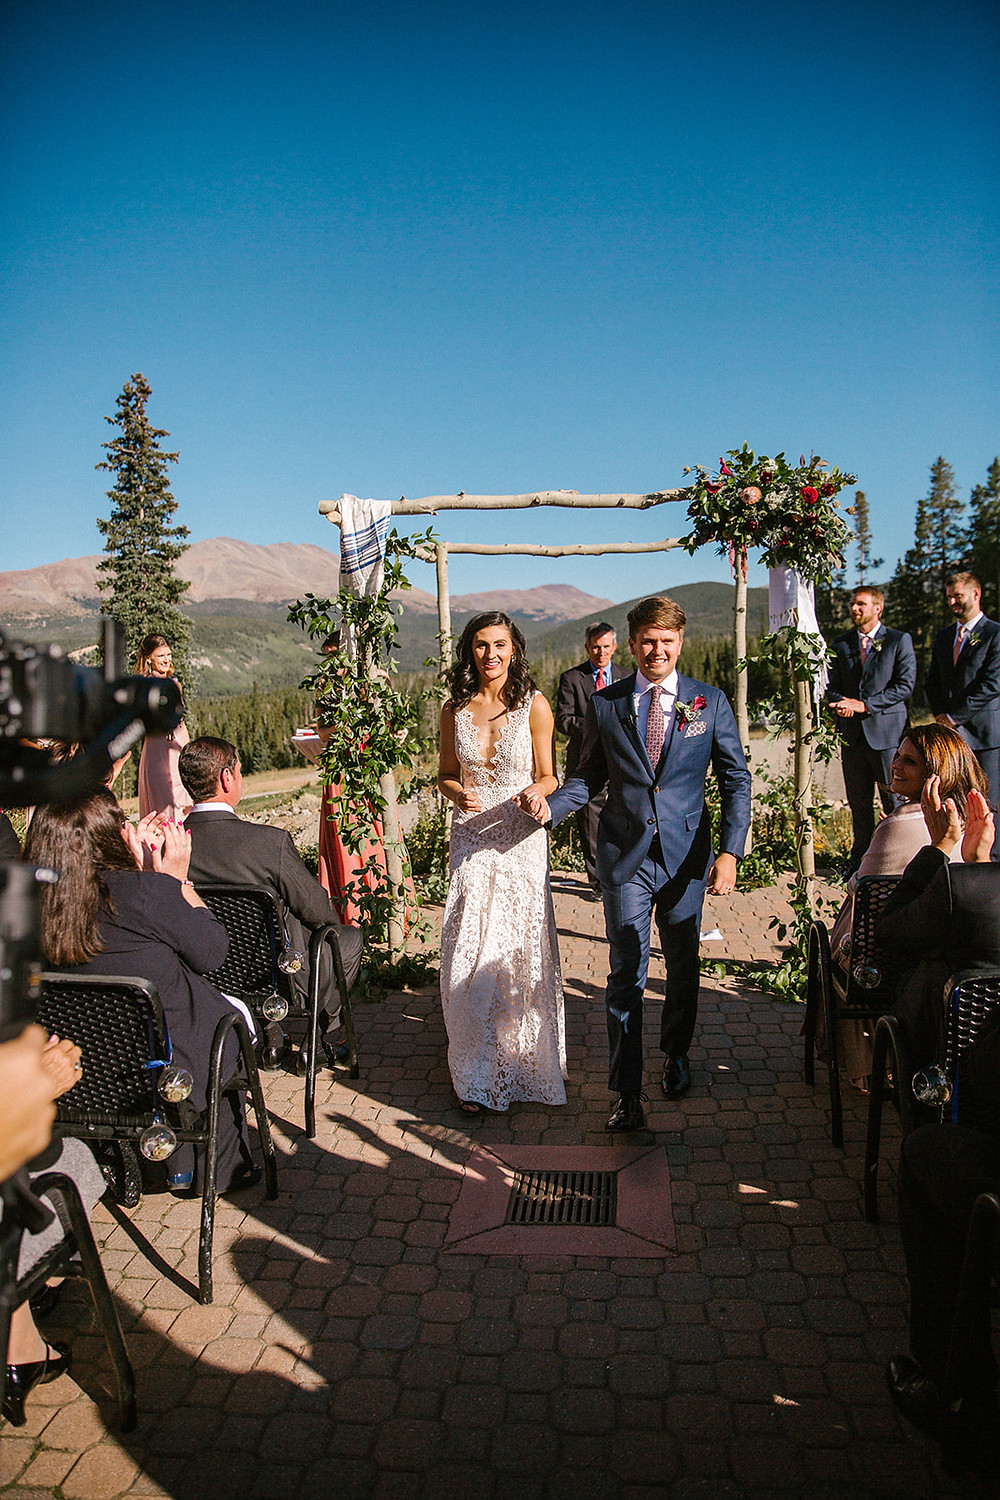 Breckenridge Wedding Planner - Ten Mile Station Wedding - Just Married